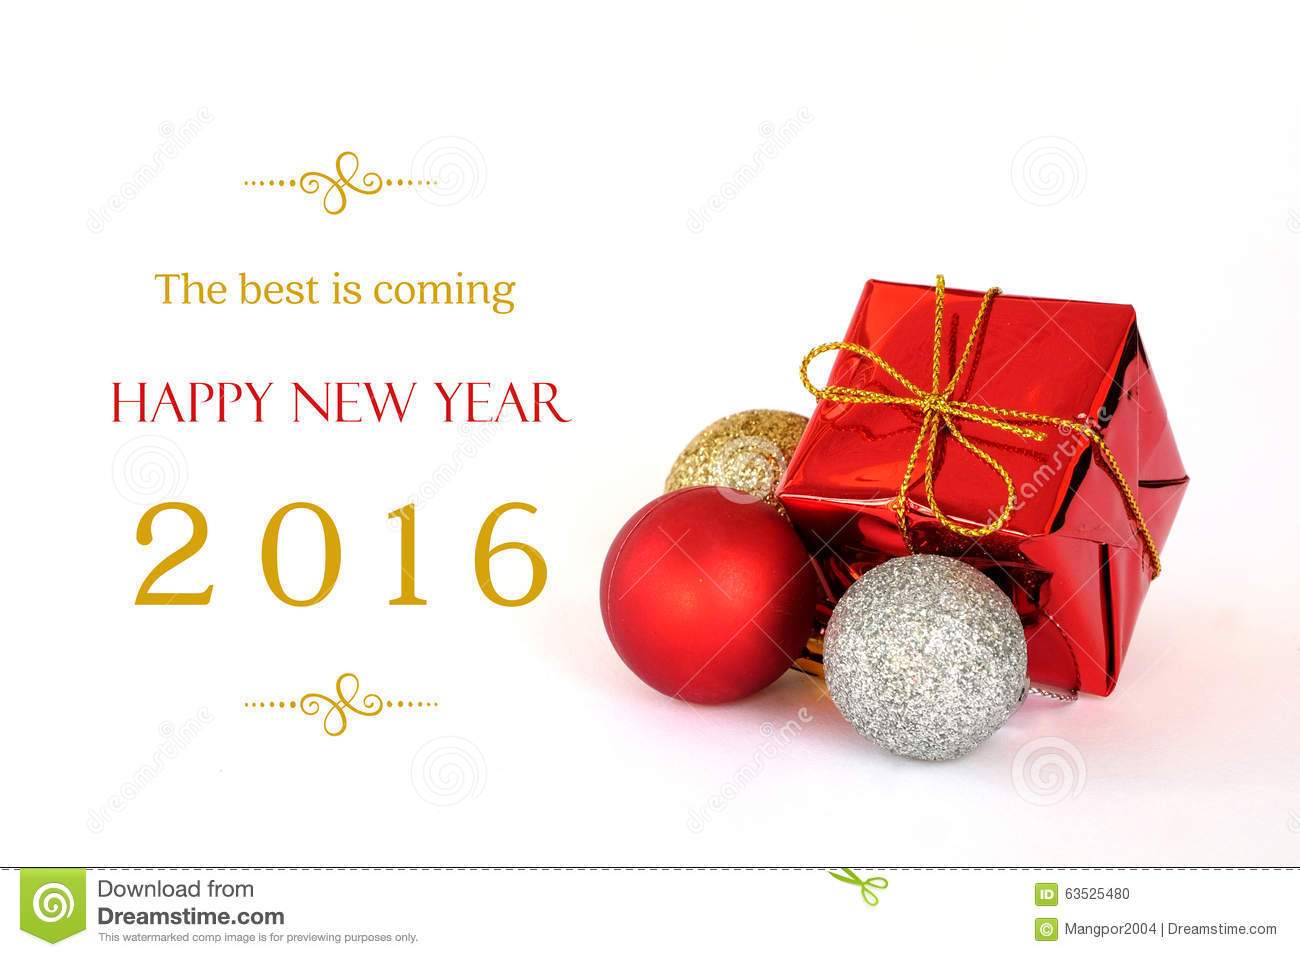 The Best Is Coming, Happy New Year 2016 Banner Stock Photo - Image ...